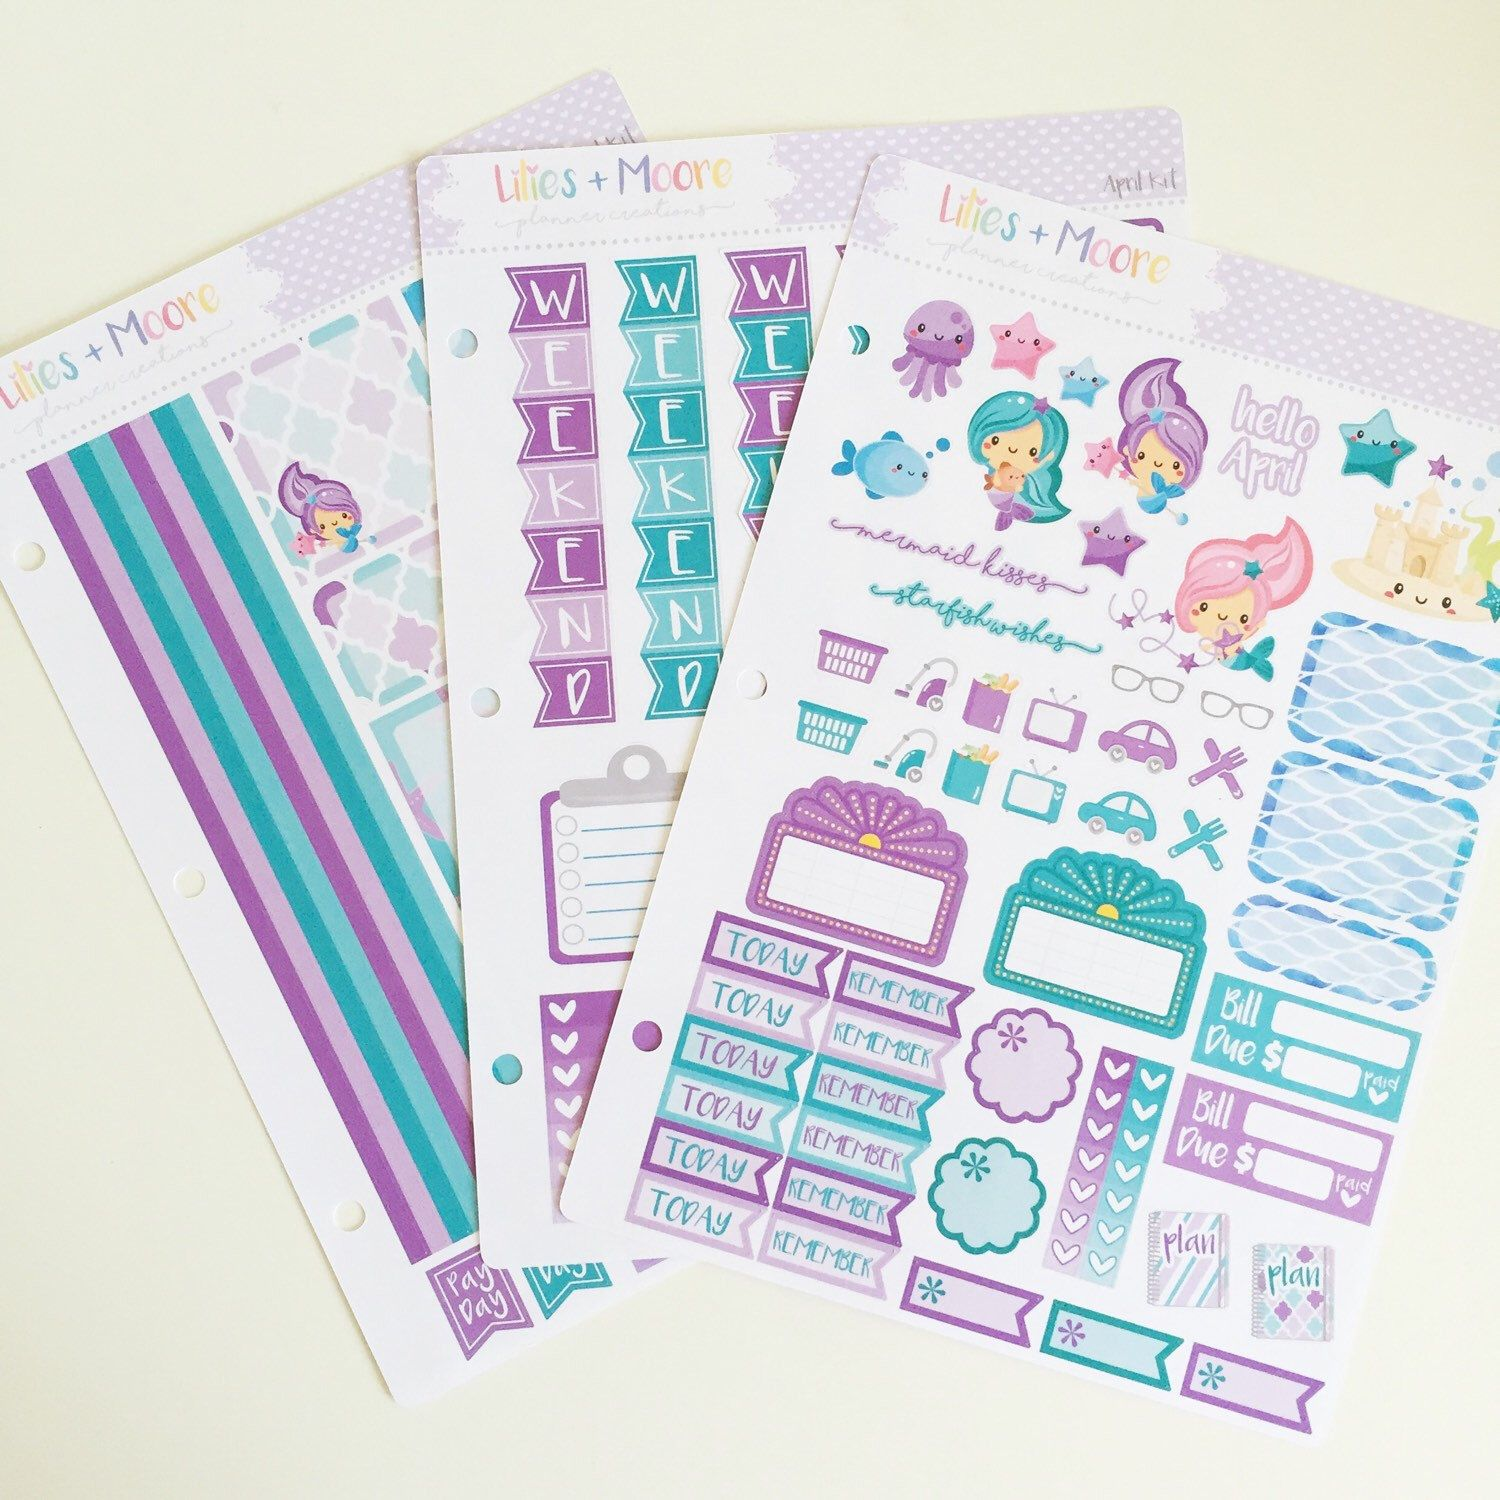 Erin Condren HORIZONTAL April Kit, Mermaid Stickers, April Stickers, Erin Condren Life Planner by liliesandmoore on Etsy https://www.etsy.com/listing/285968669/erin-condren-horizontal-april-kit